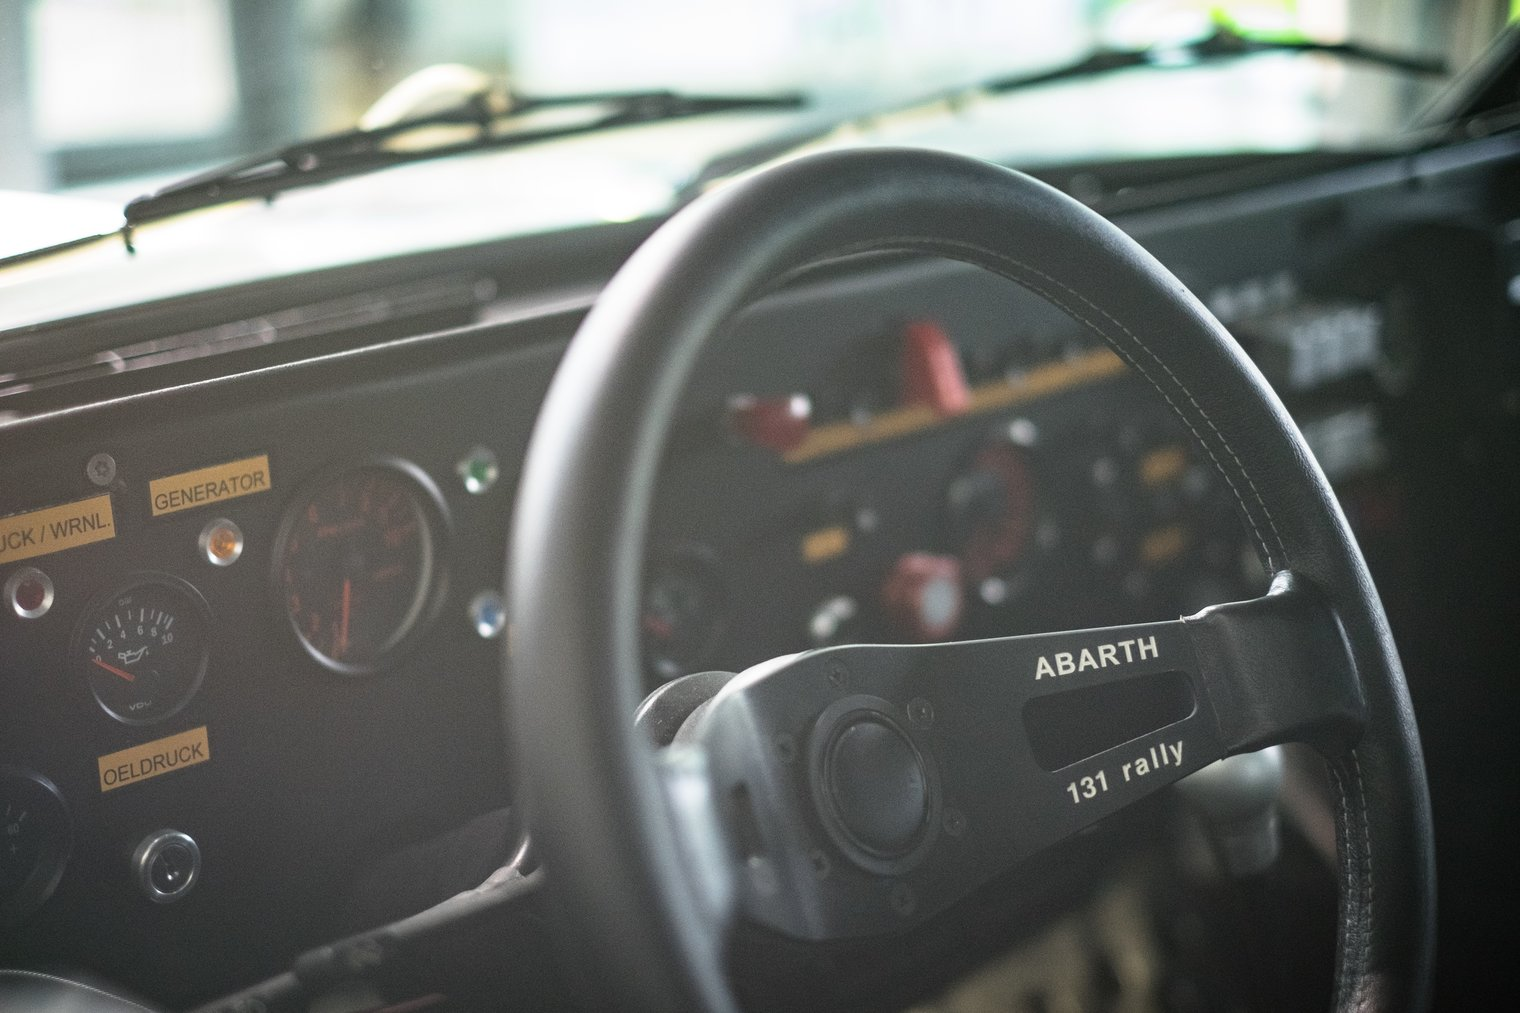 Abarth 131 rally interior steering wheel